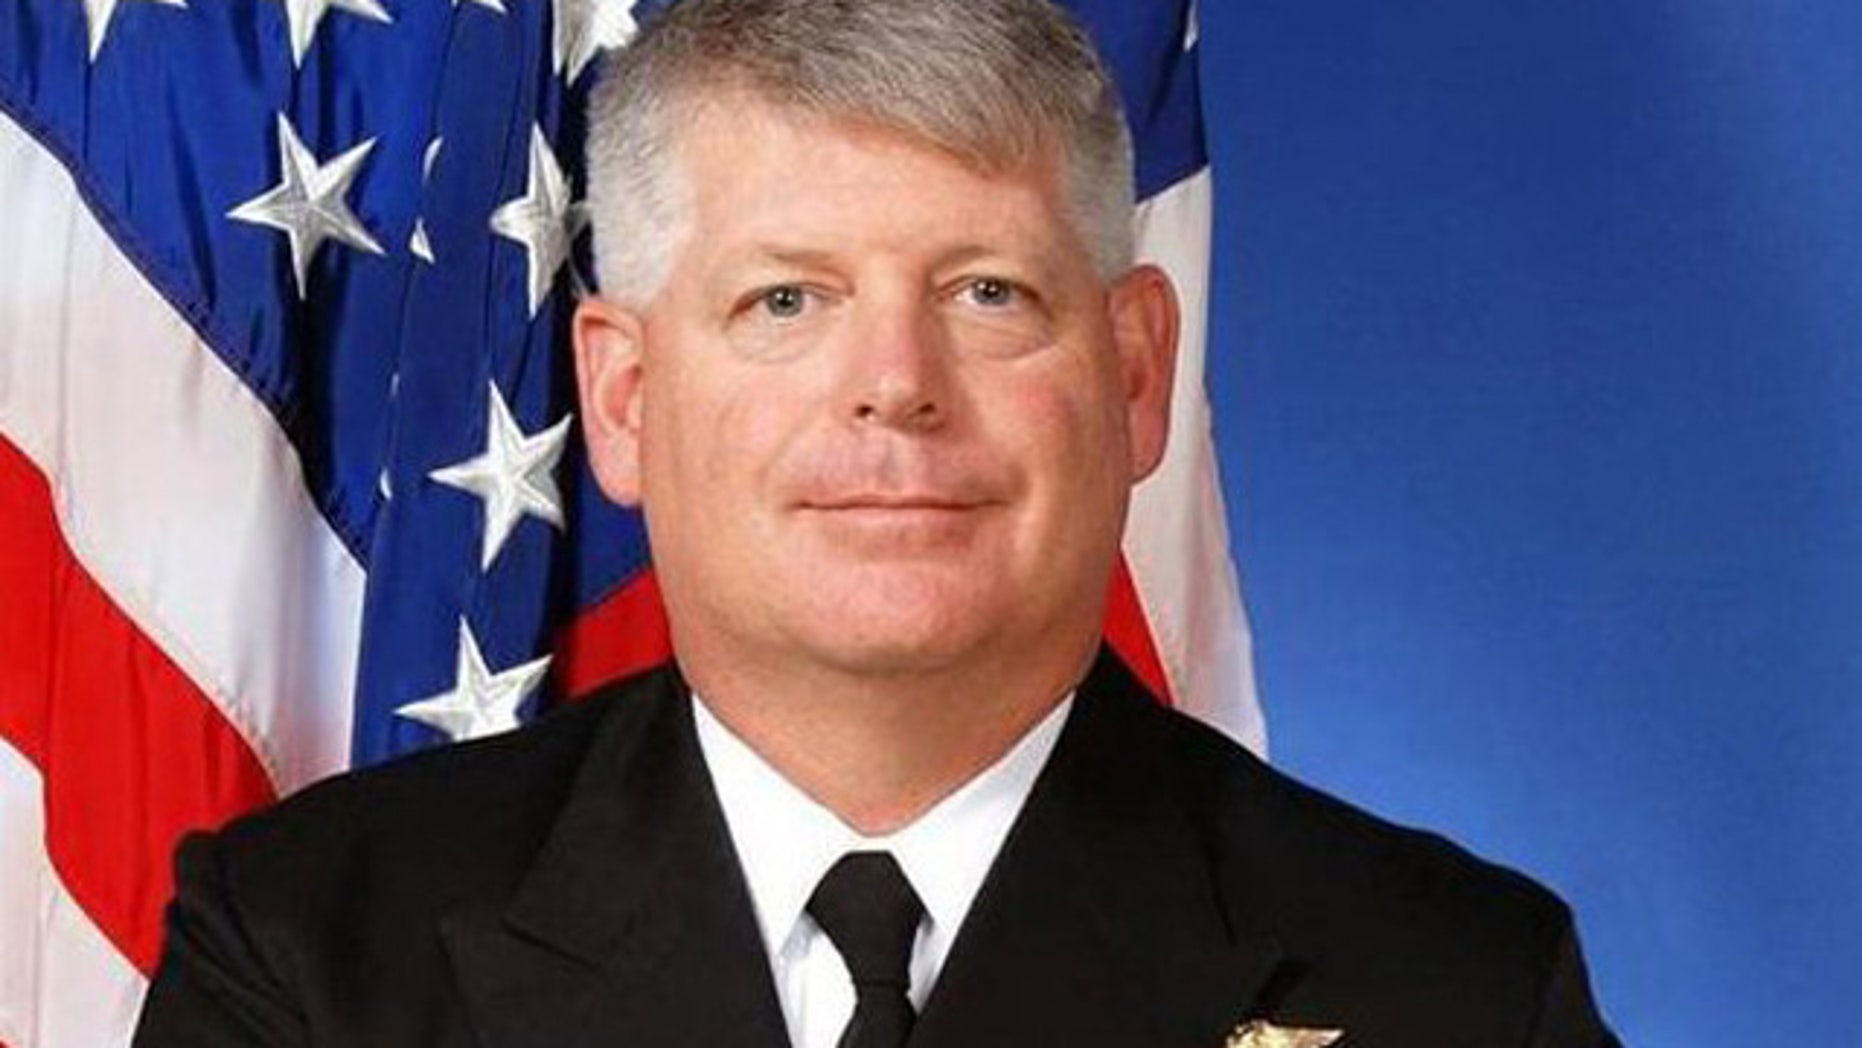 This undated photo shows U.S. Navy Rear Admiral Robert Gilbeau